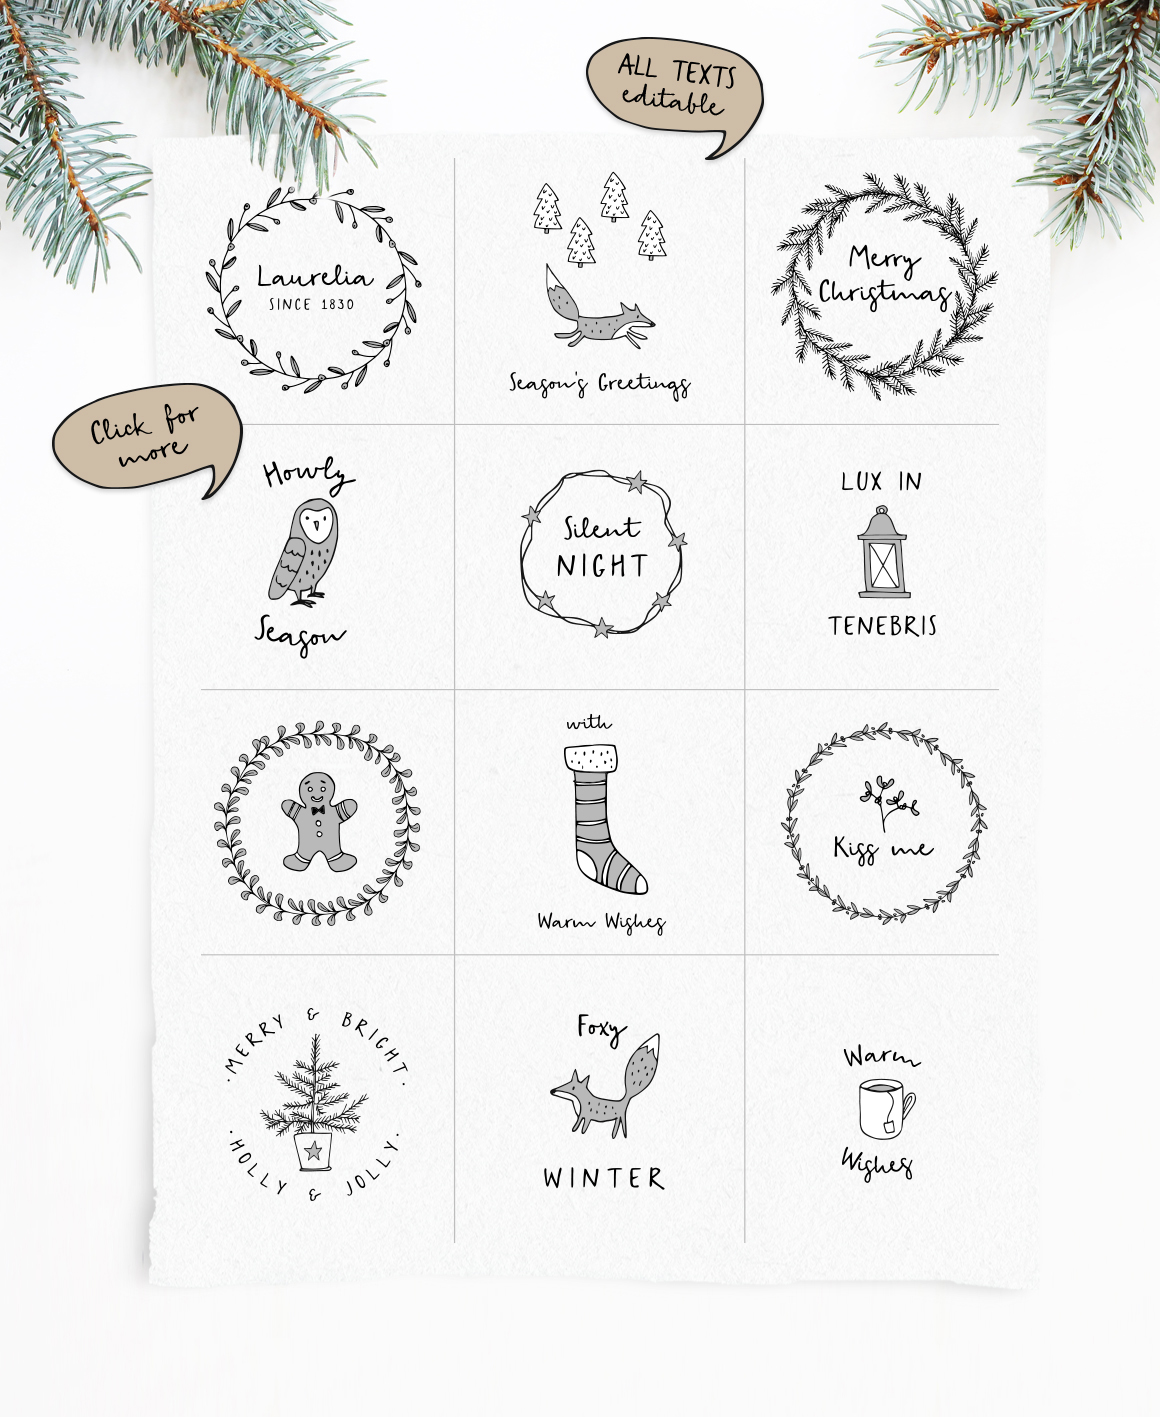 Snowy Christmas script font & logos example image 3